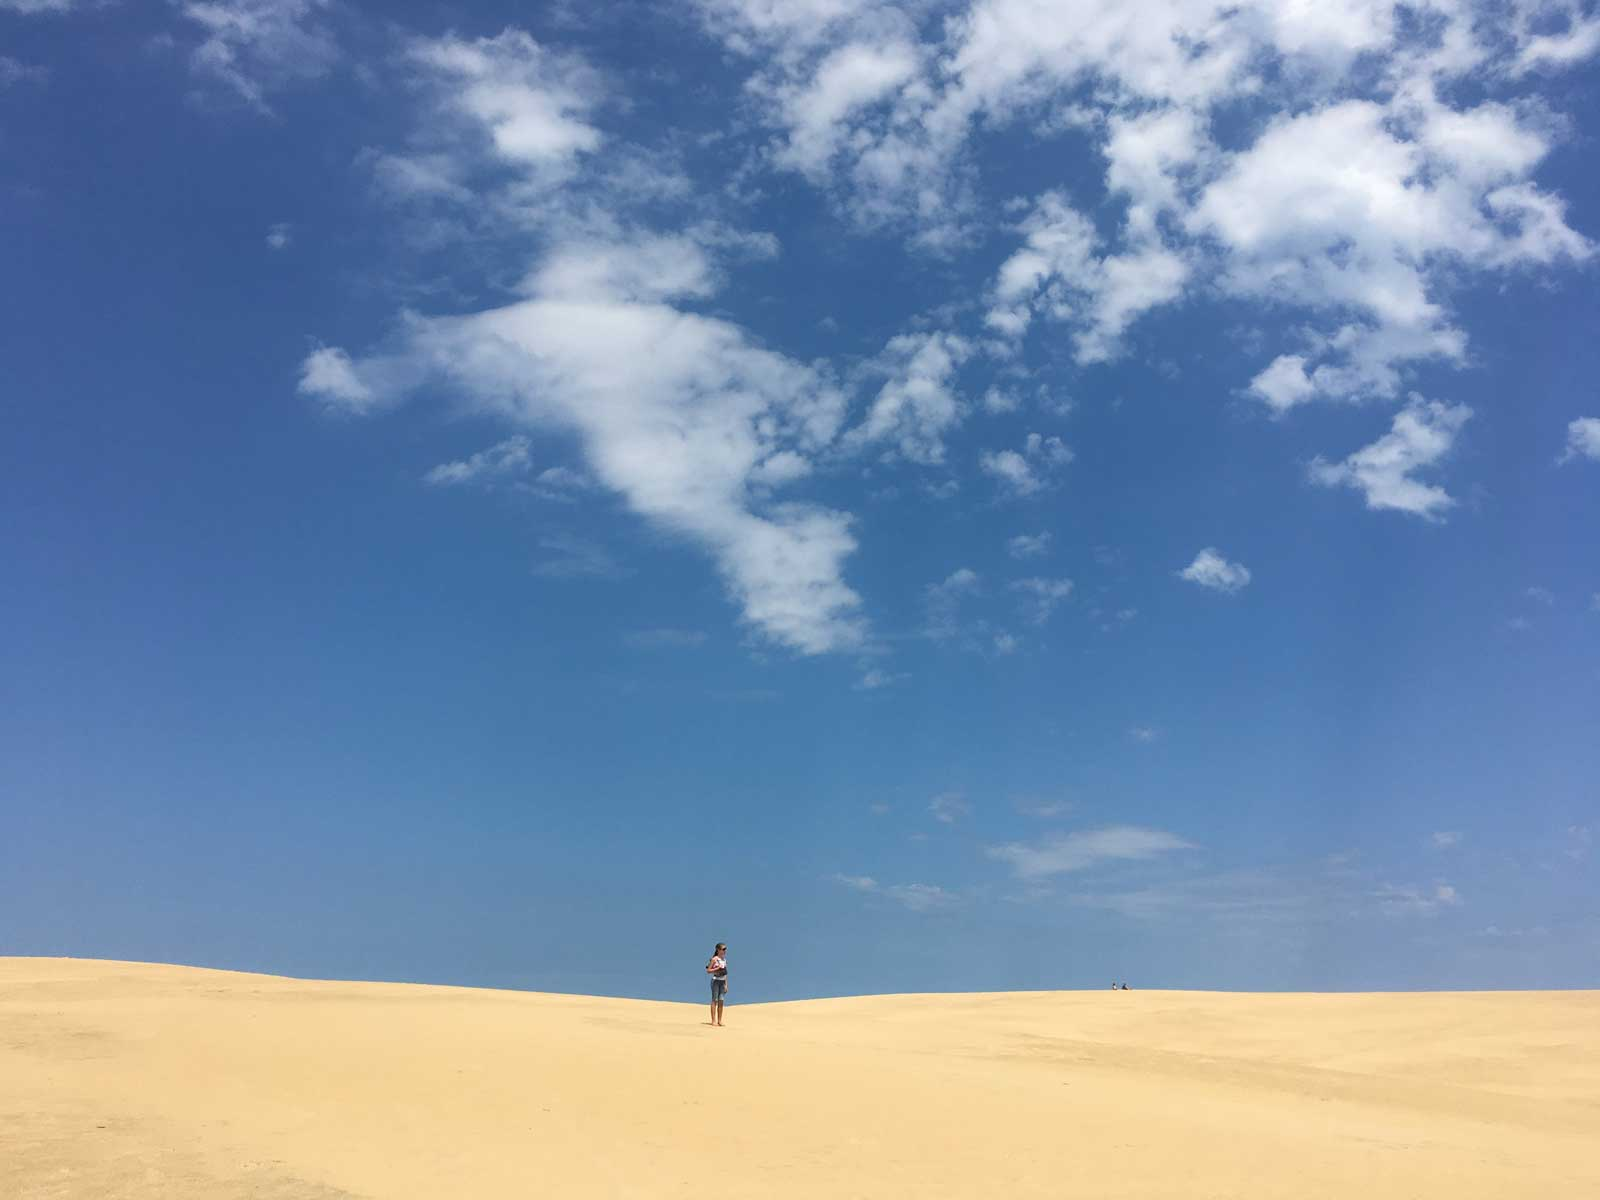 A girl on top of Jockeys Ridge on the Outer Banks of North Carolina near Nags Head and Cape Hatteras.